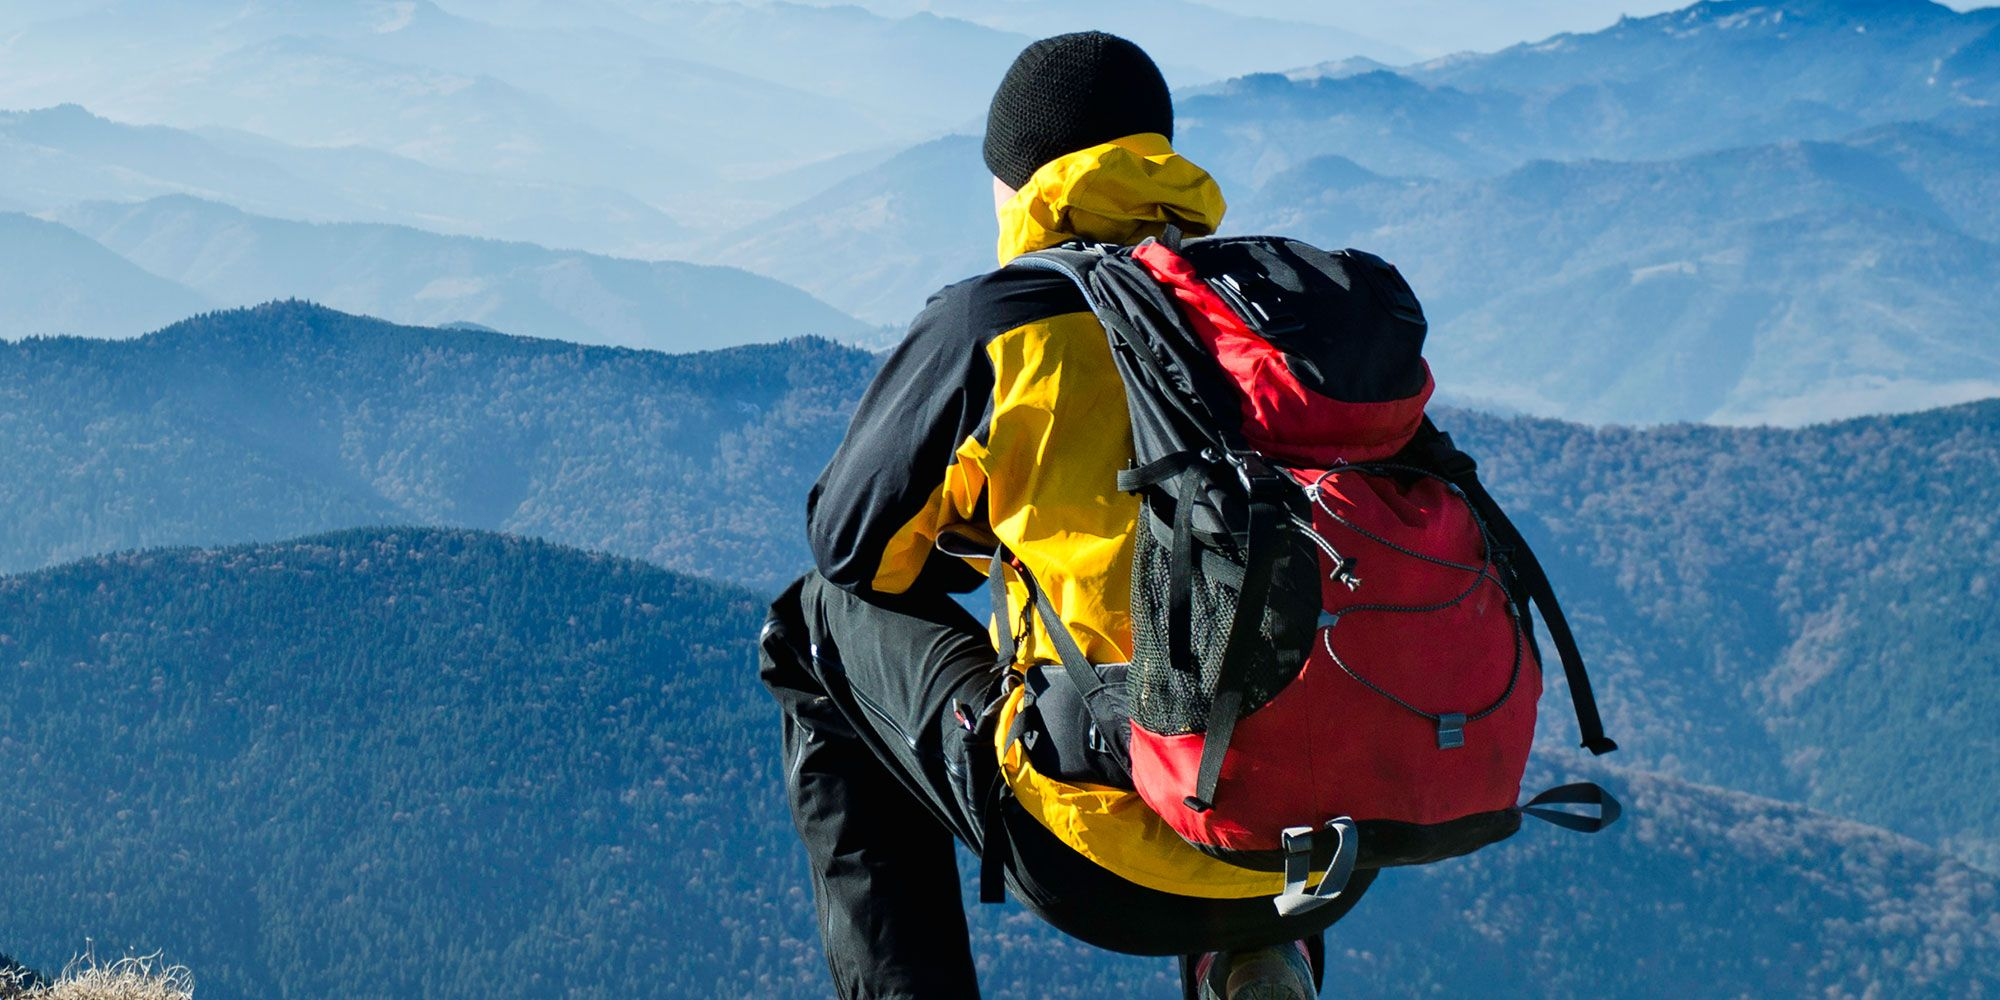 REI's Gear Up Get Out Sale Has a Ton of Great Deals on Outdoor Gear Today